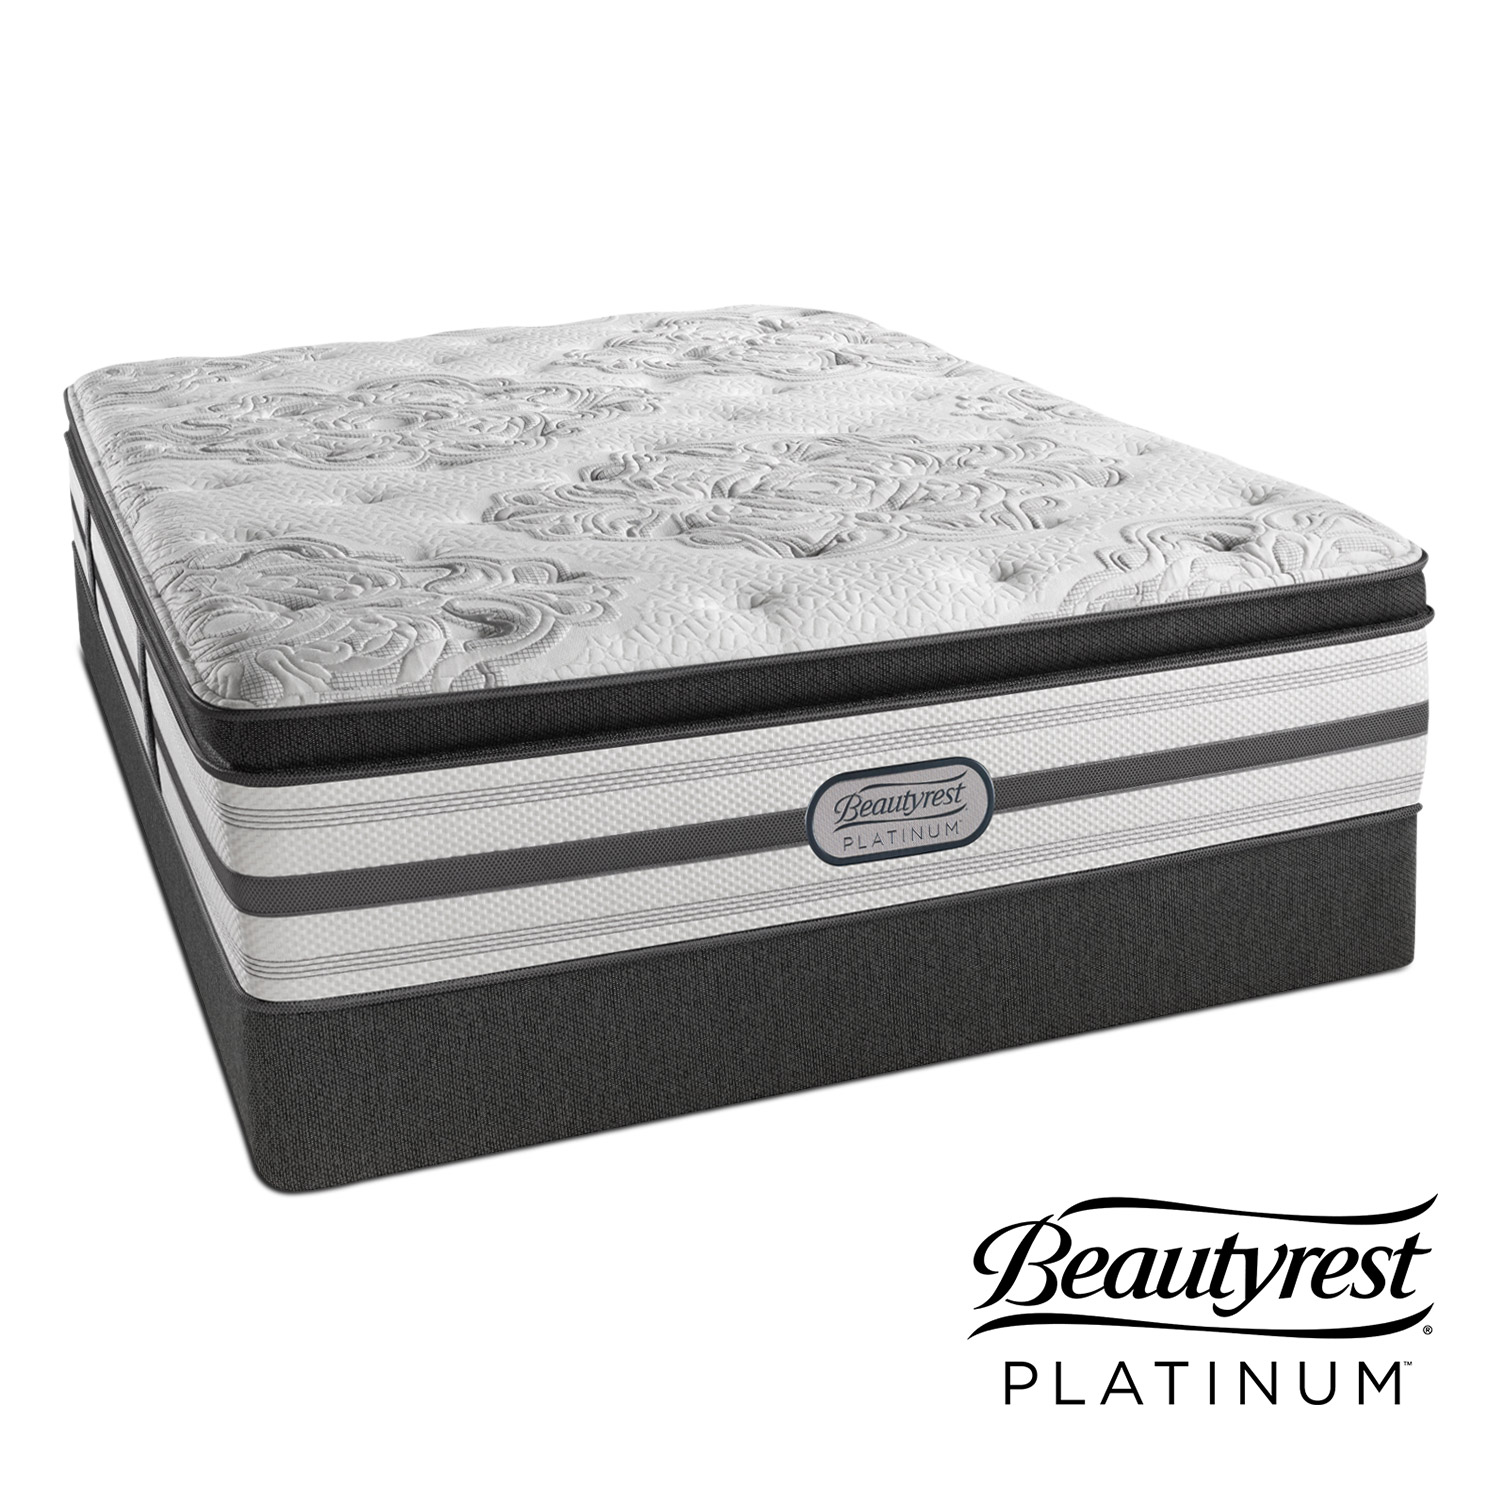 mattresses and bedding value city furniture 17692 | 437779 fit inside 7c320 320 composite to center center 7c320 320 background color white